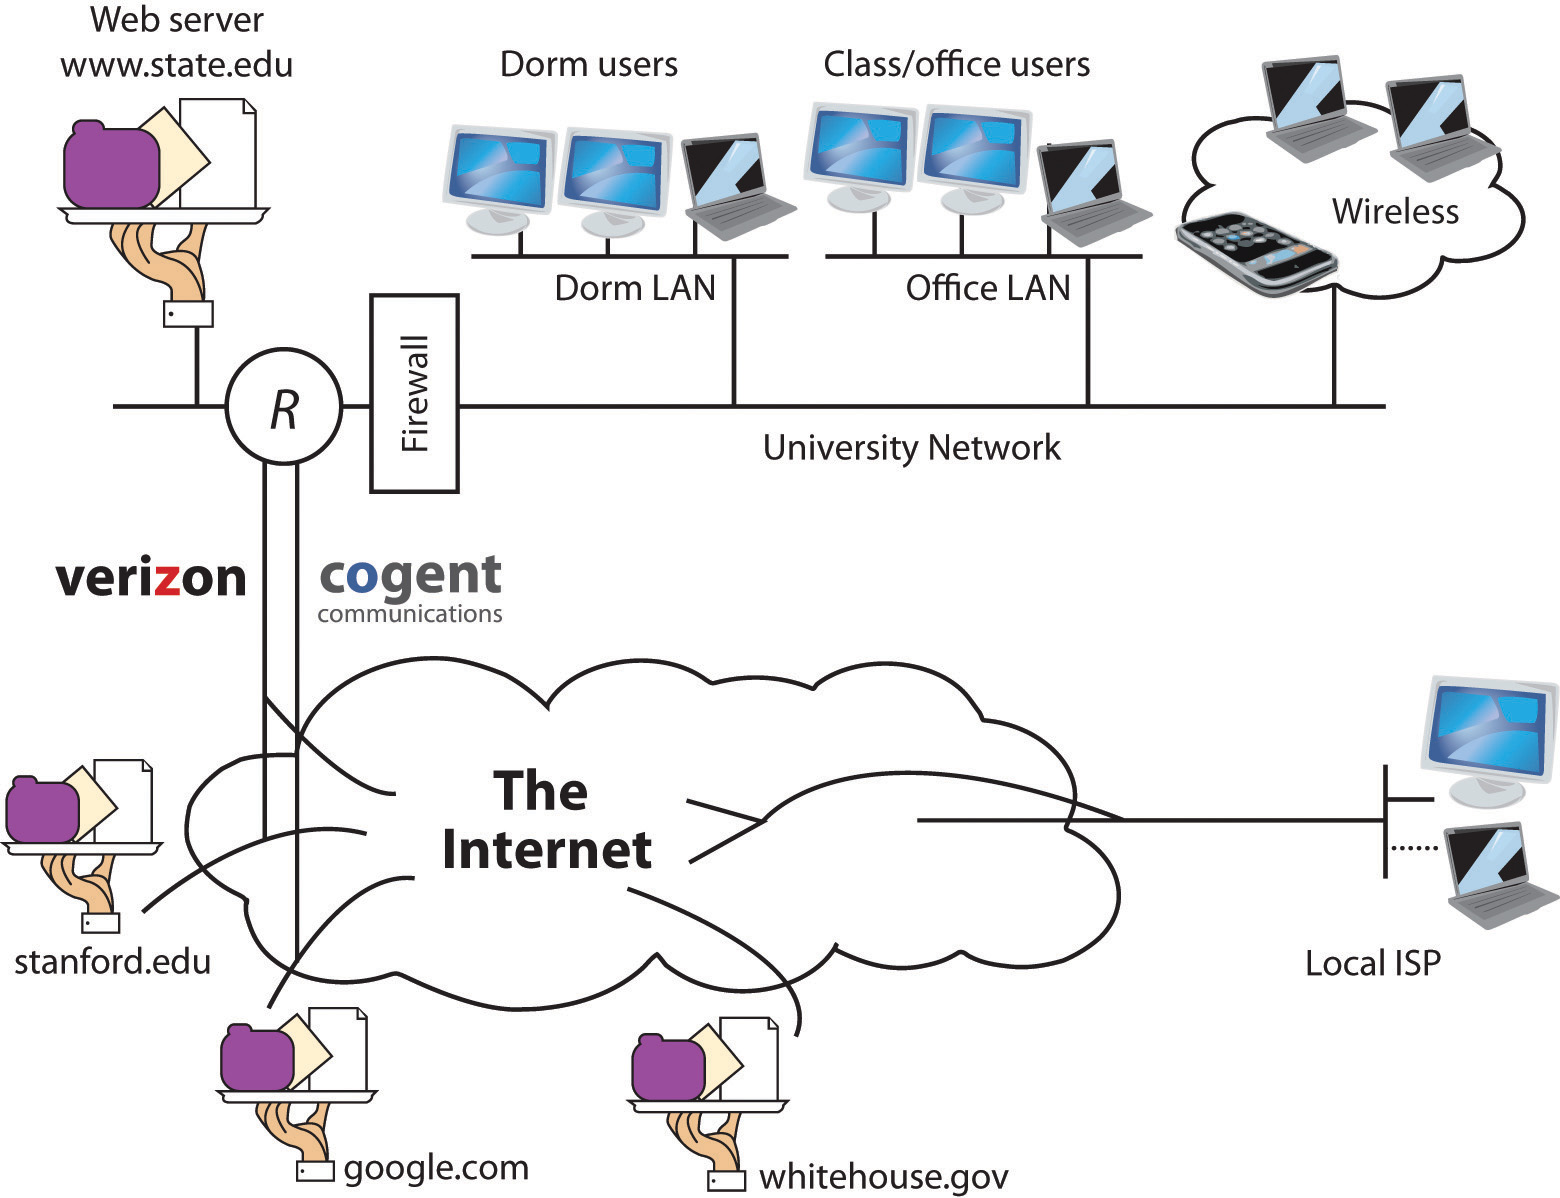 f4a26aa095033a4440497b169f3f90f5 internet 101 understanding how the internet works How VPN Works Diagram at edmiracle.co